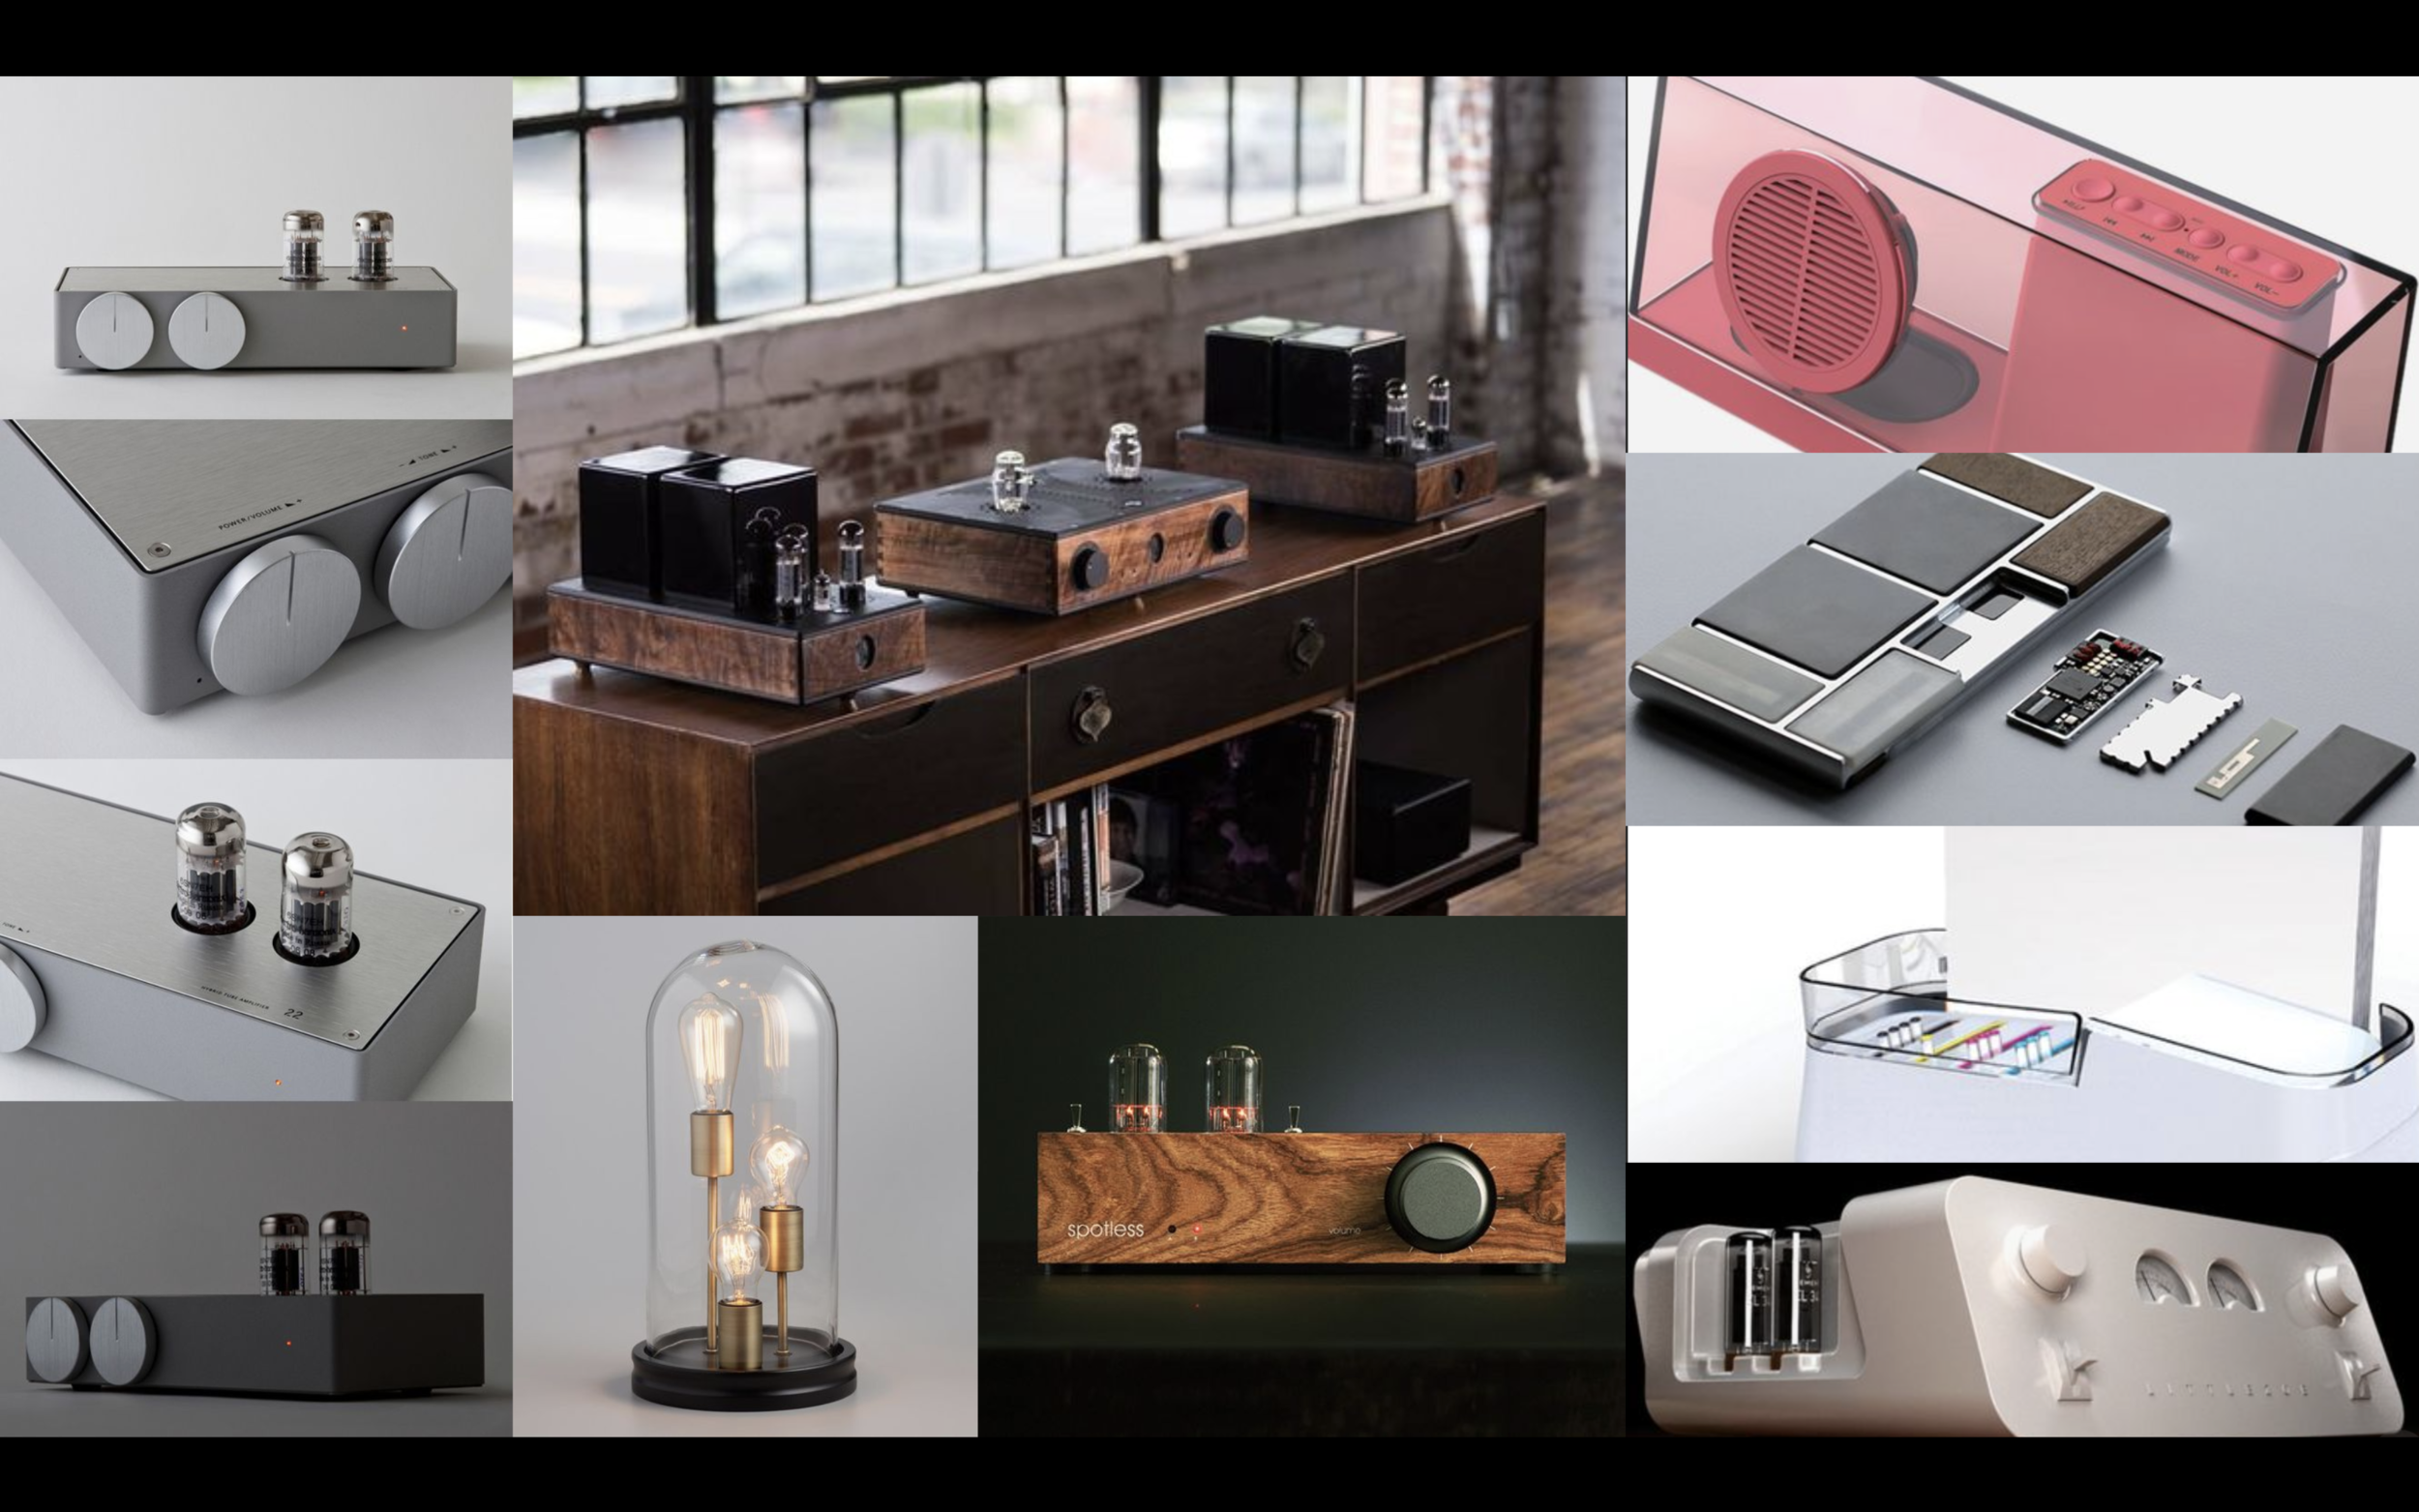 We created a mood board to convey the aesthetic we wanted our printer to have that represented a durable, premium product.